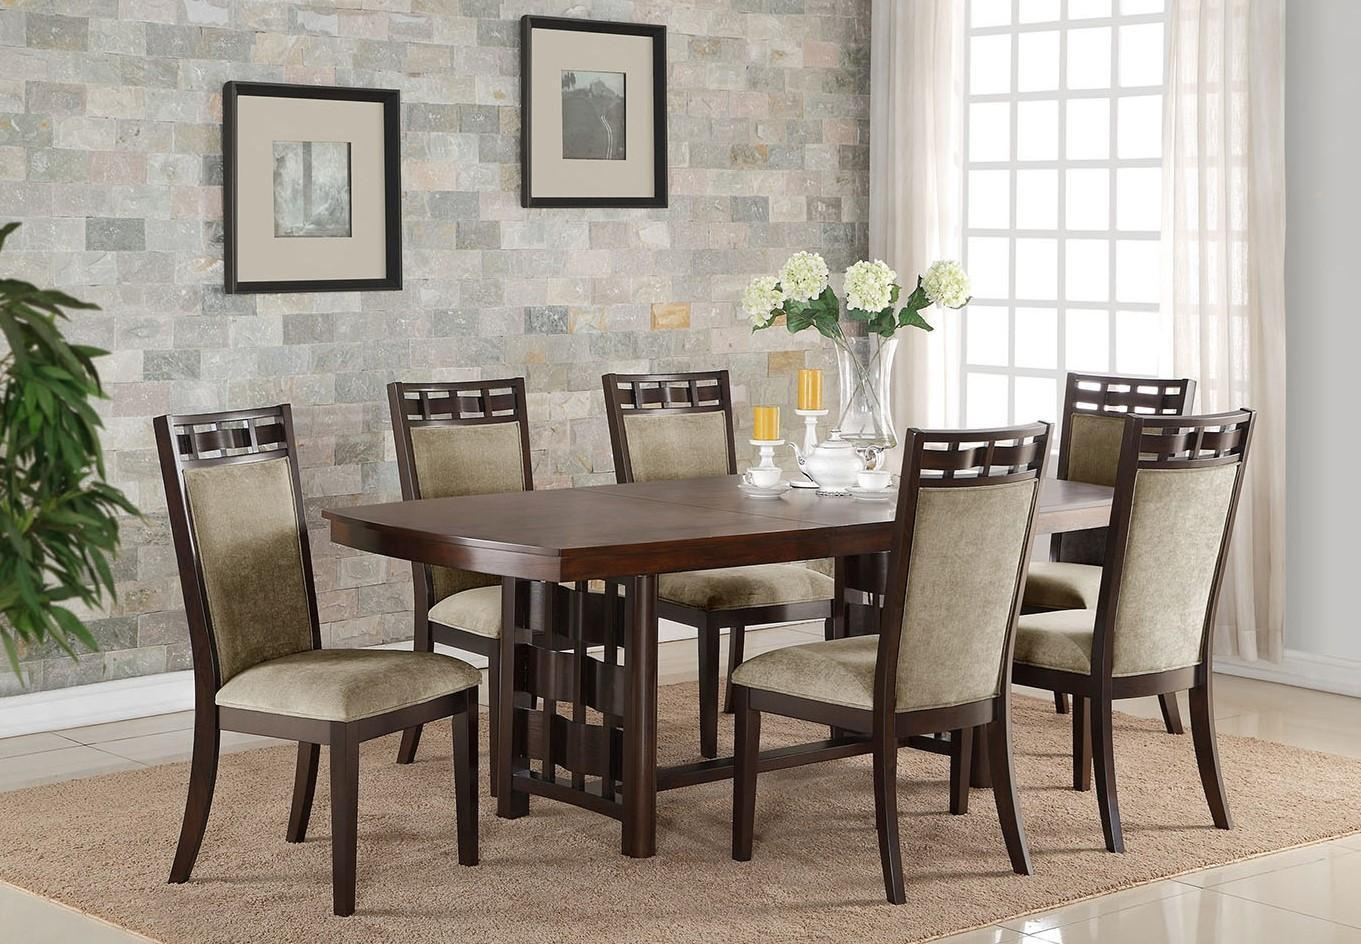 Crown Mark 2375 Pryce Contemporary Espresso Finish Dining Table & Chair Set 7Pcs for sale  USA